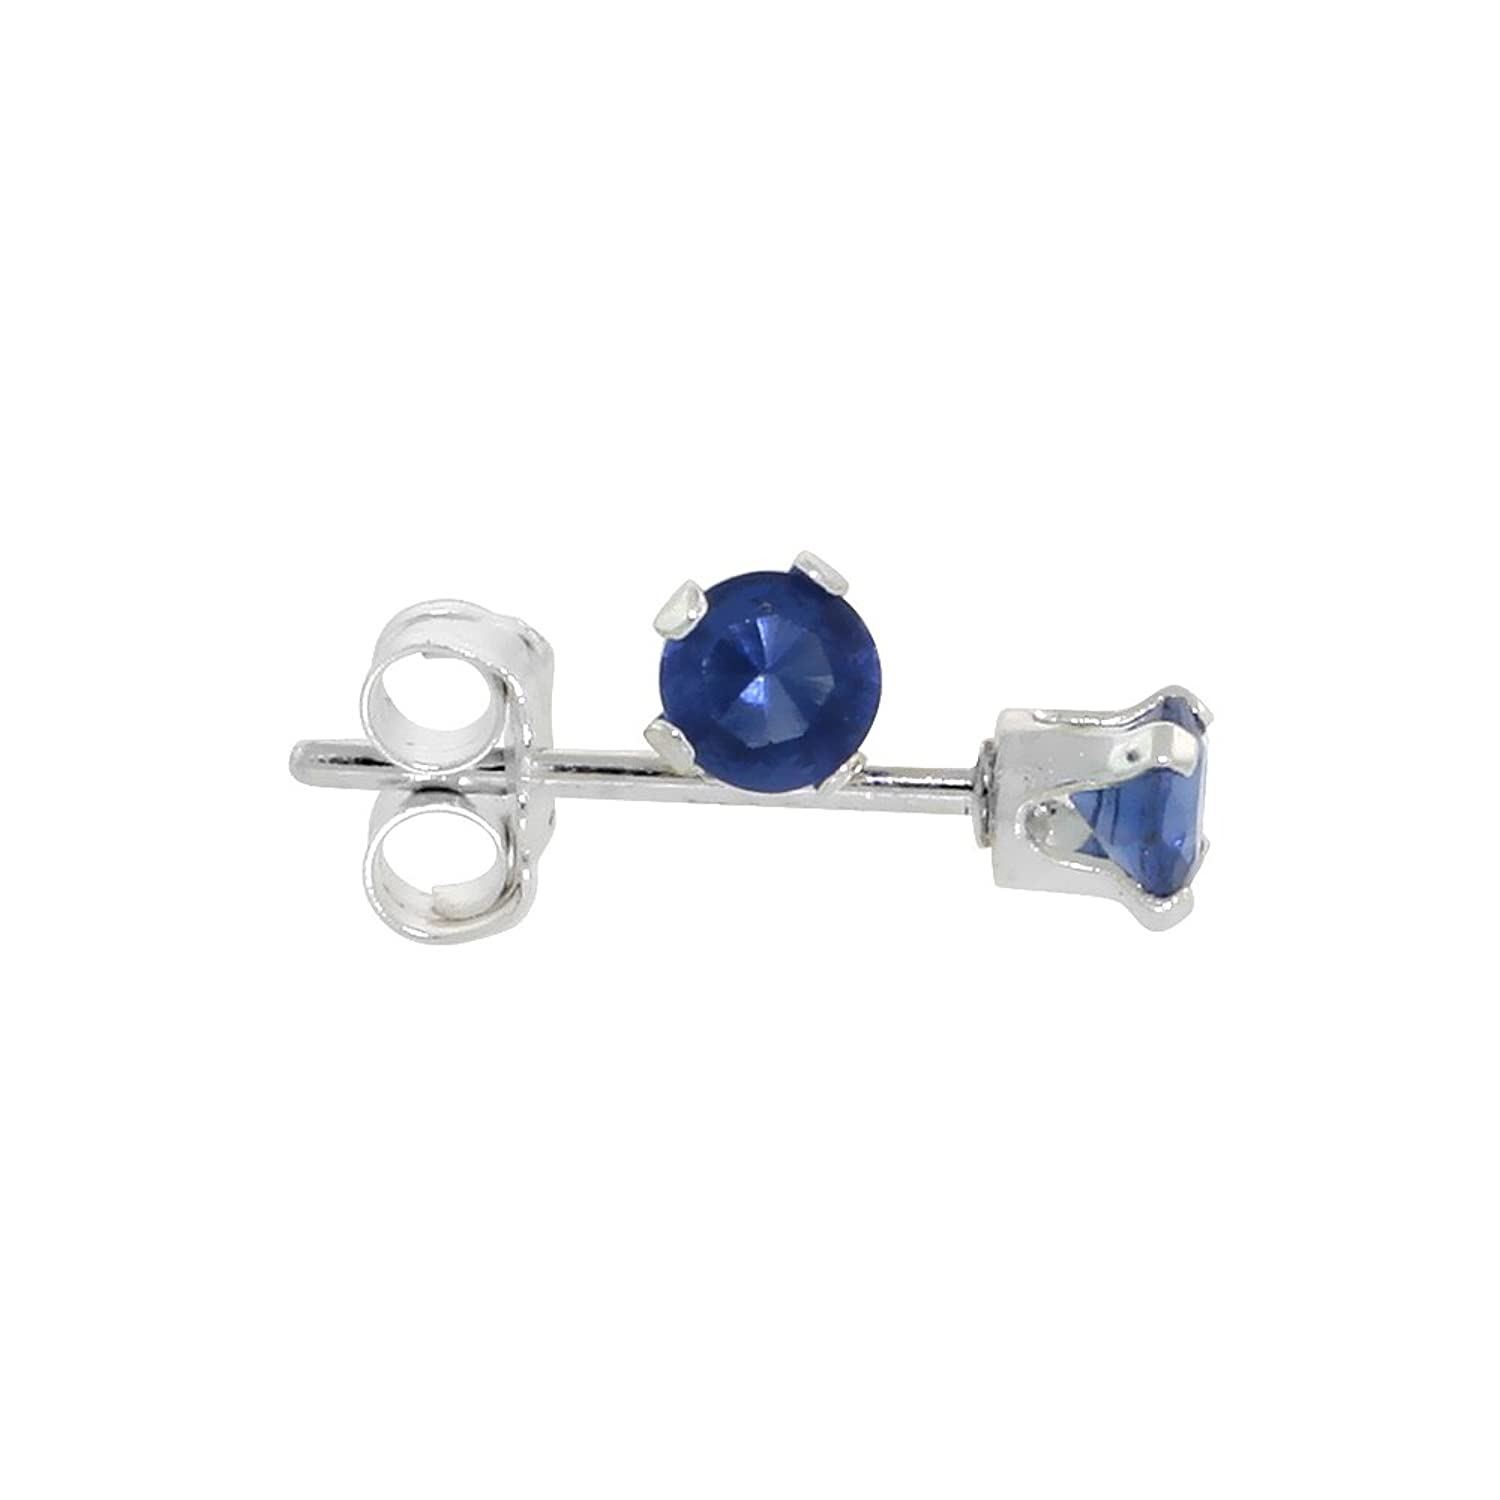 sls tone earrings stud silver sapphire cz half micropave jewelry two par mens square bling